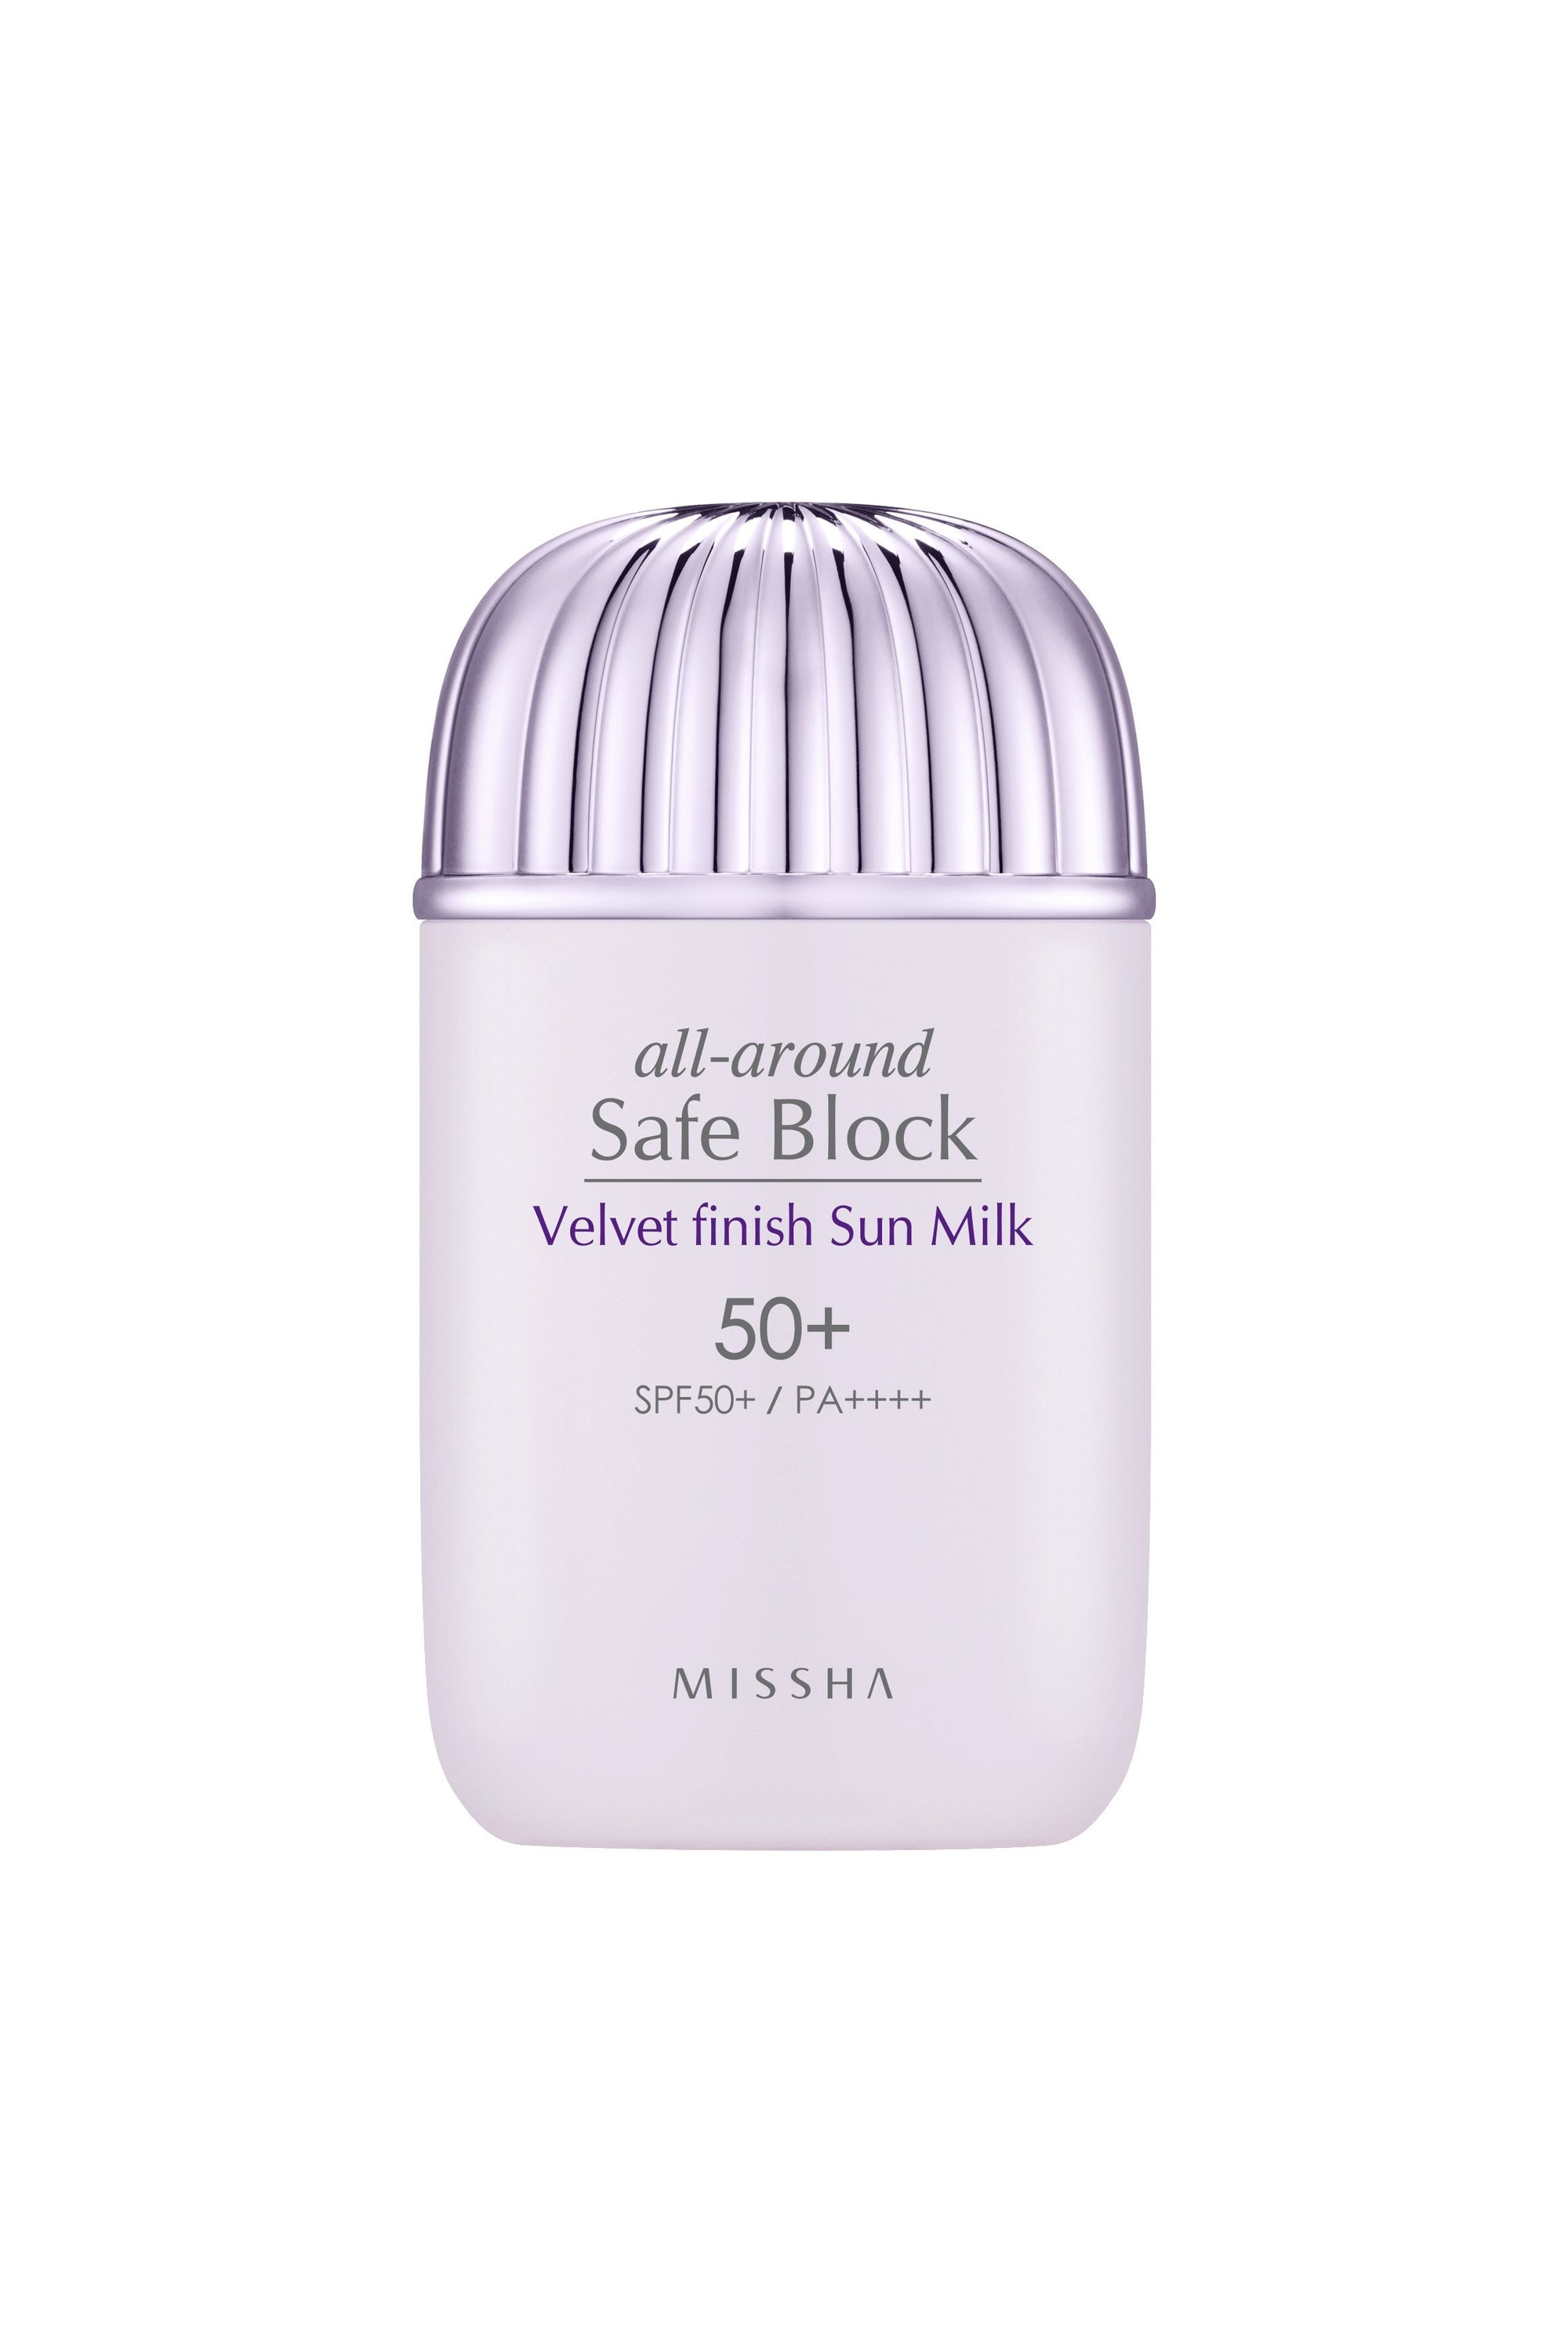 Health & Beauty > Personal Care > Cosmetics > Skin Care > Sunscreen - All Around Safe Block Velvet Finish Sun Milk 50+/PA+++ 40 Ml